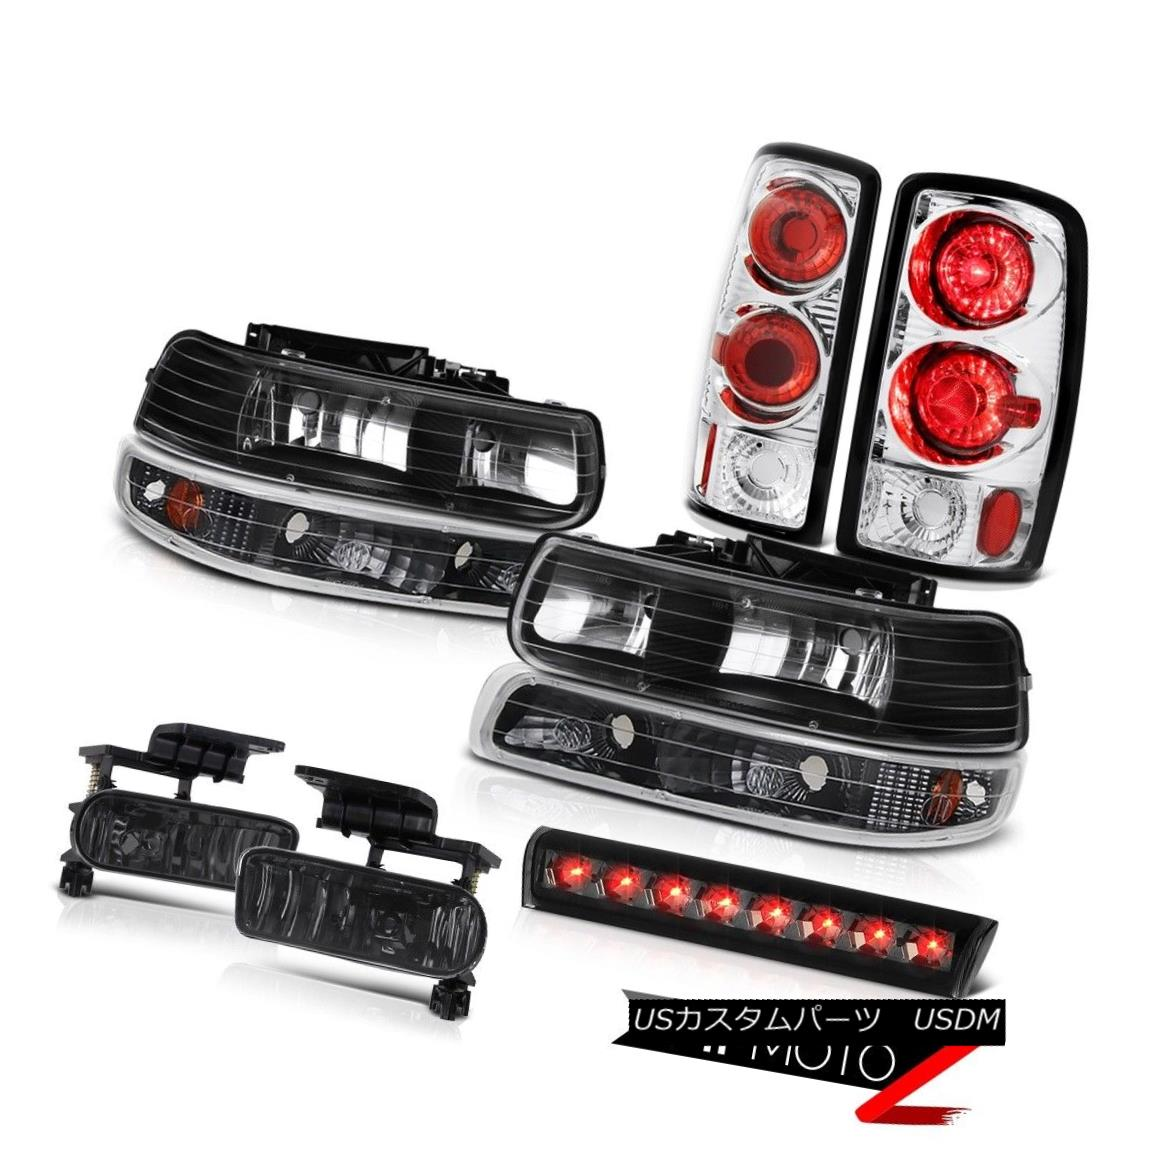 ライト・ランプ, ヘッドライト  2000-2006 Tahoe LS Roof cab light fog lamps clear chrome tail parking Fog Lights 2000-2006LS